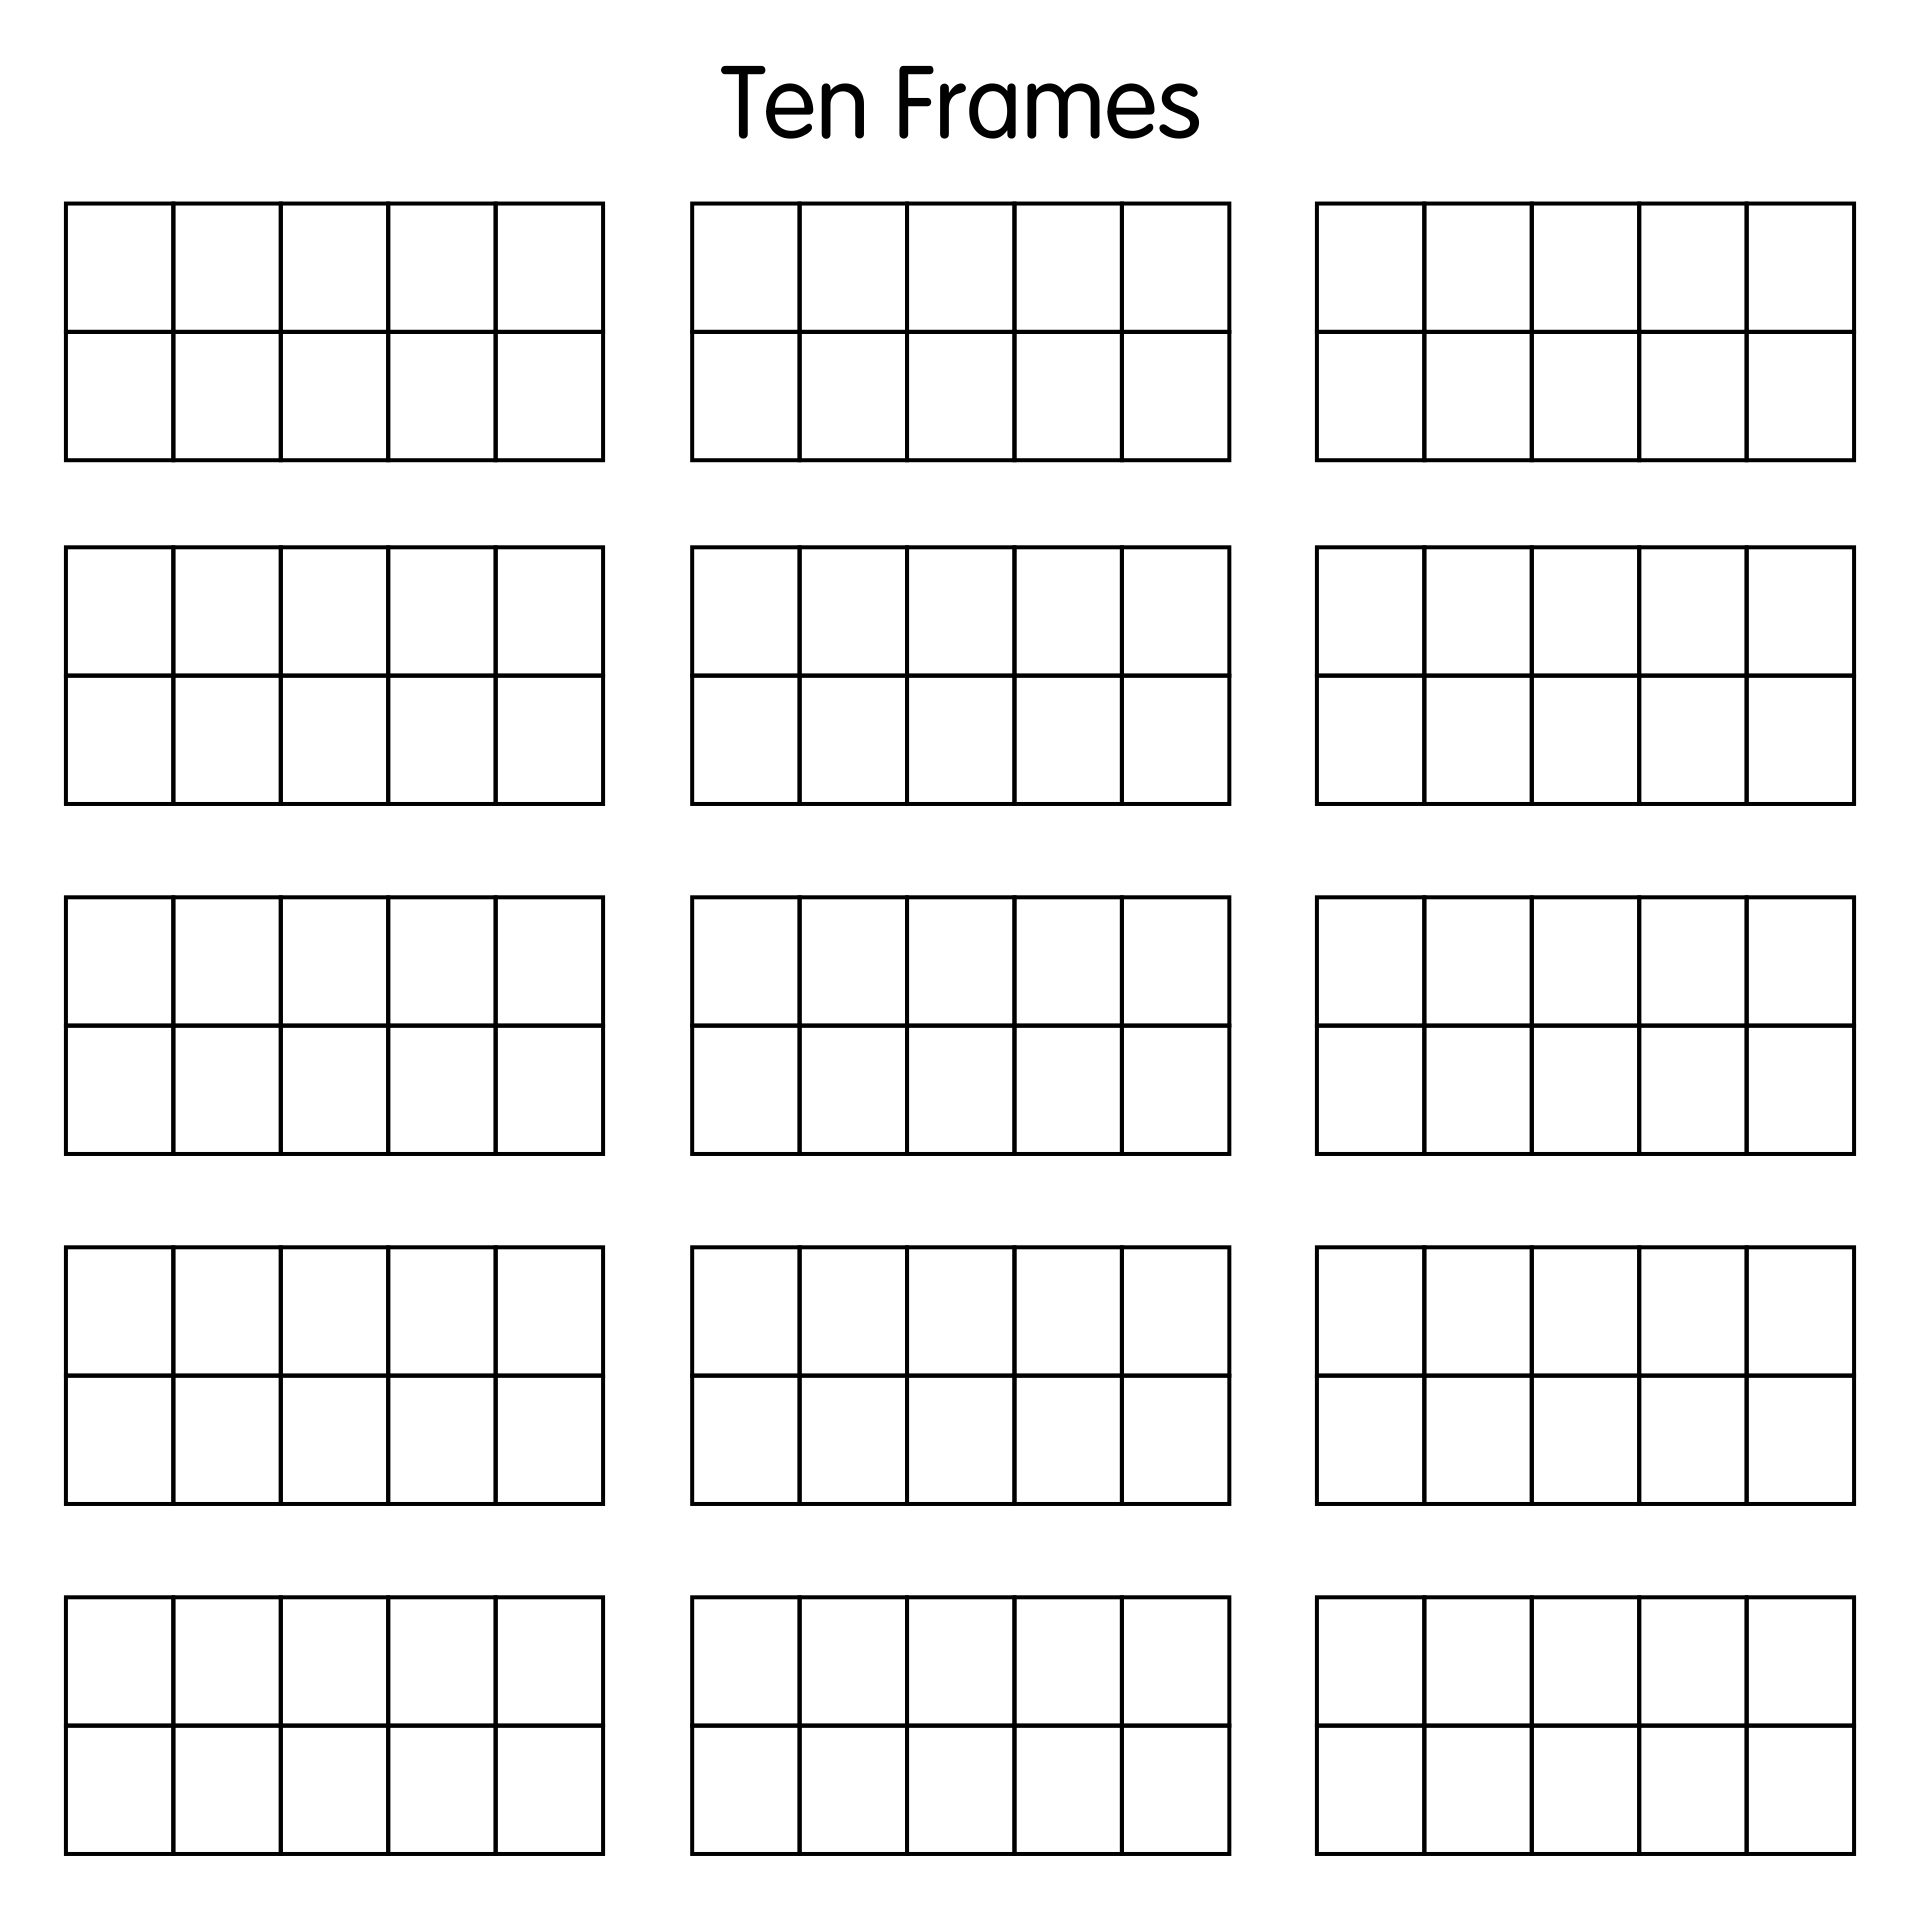 Blank Ten Frame Template